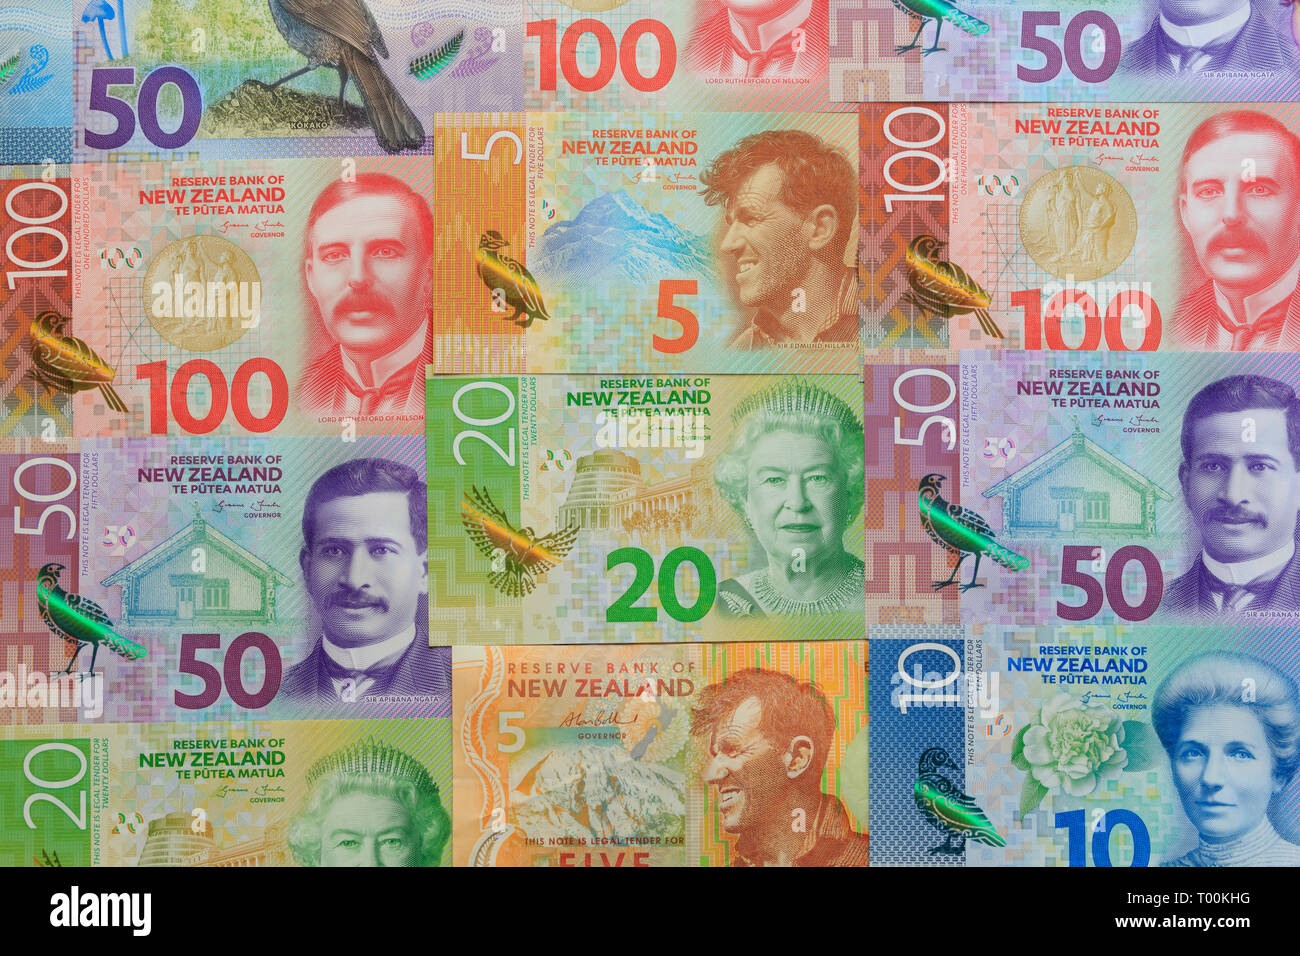 New Zealand paper currency, Auckland, New Zealand - Stock Image